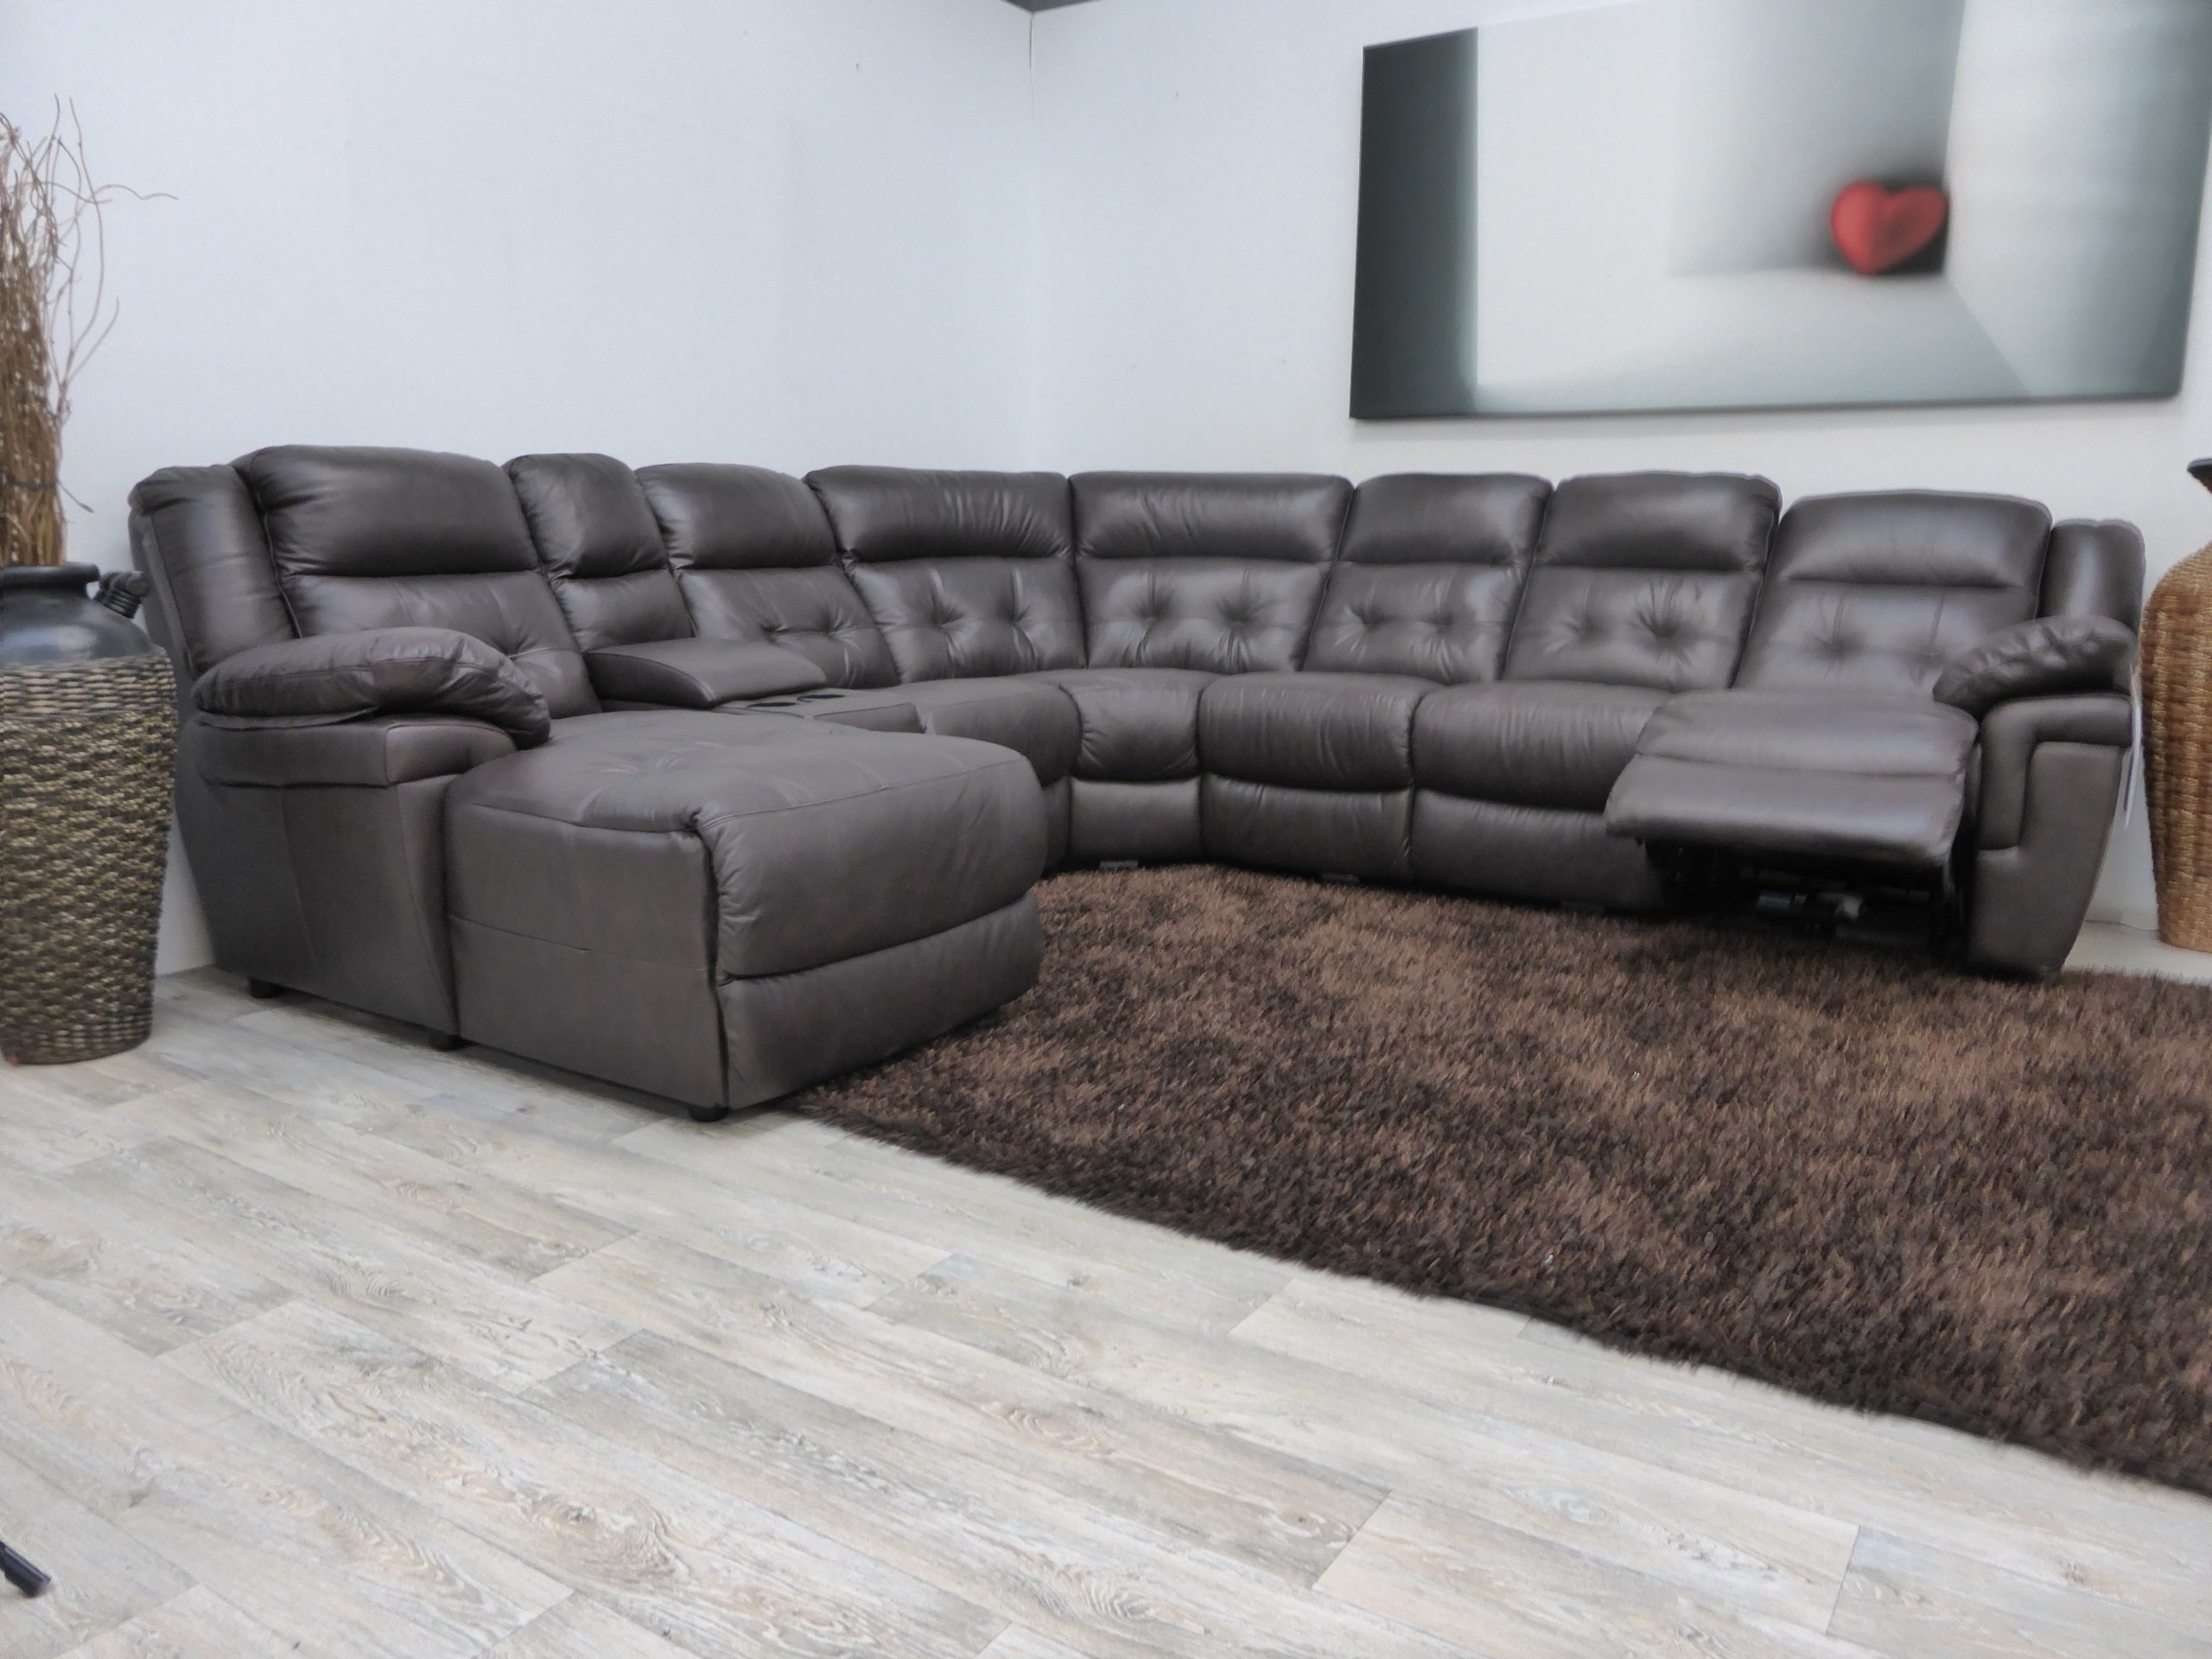 Lazyboy Sectional Sofas In Most Up To Date Perfect Lazy Boy Sectional Sofa 42 About Remodel Sofas And Couches (View 6 of 15)